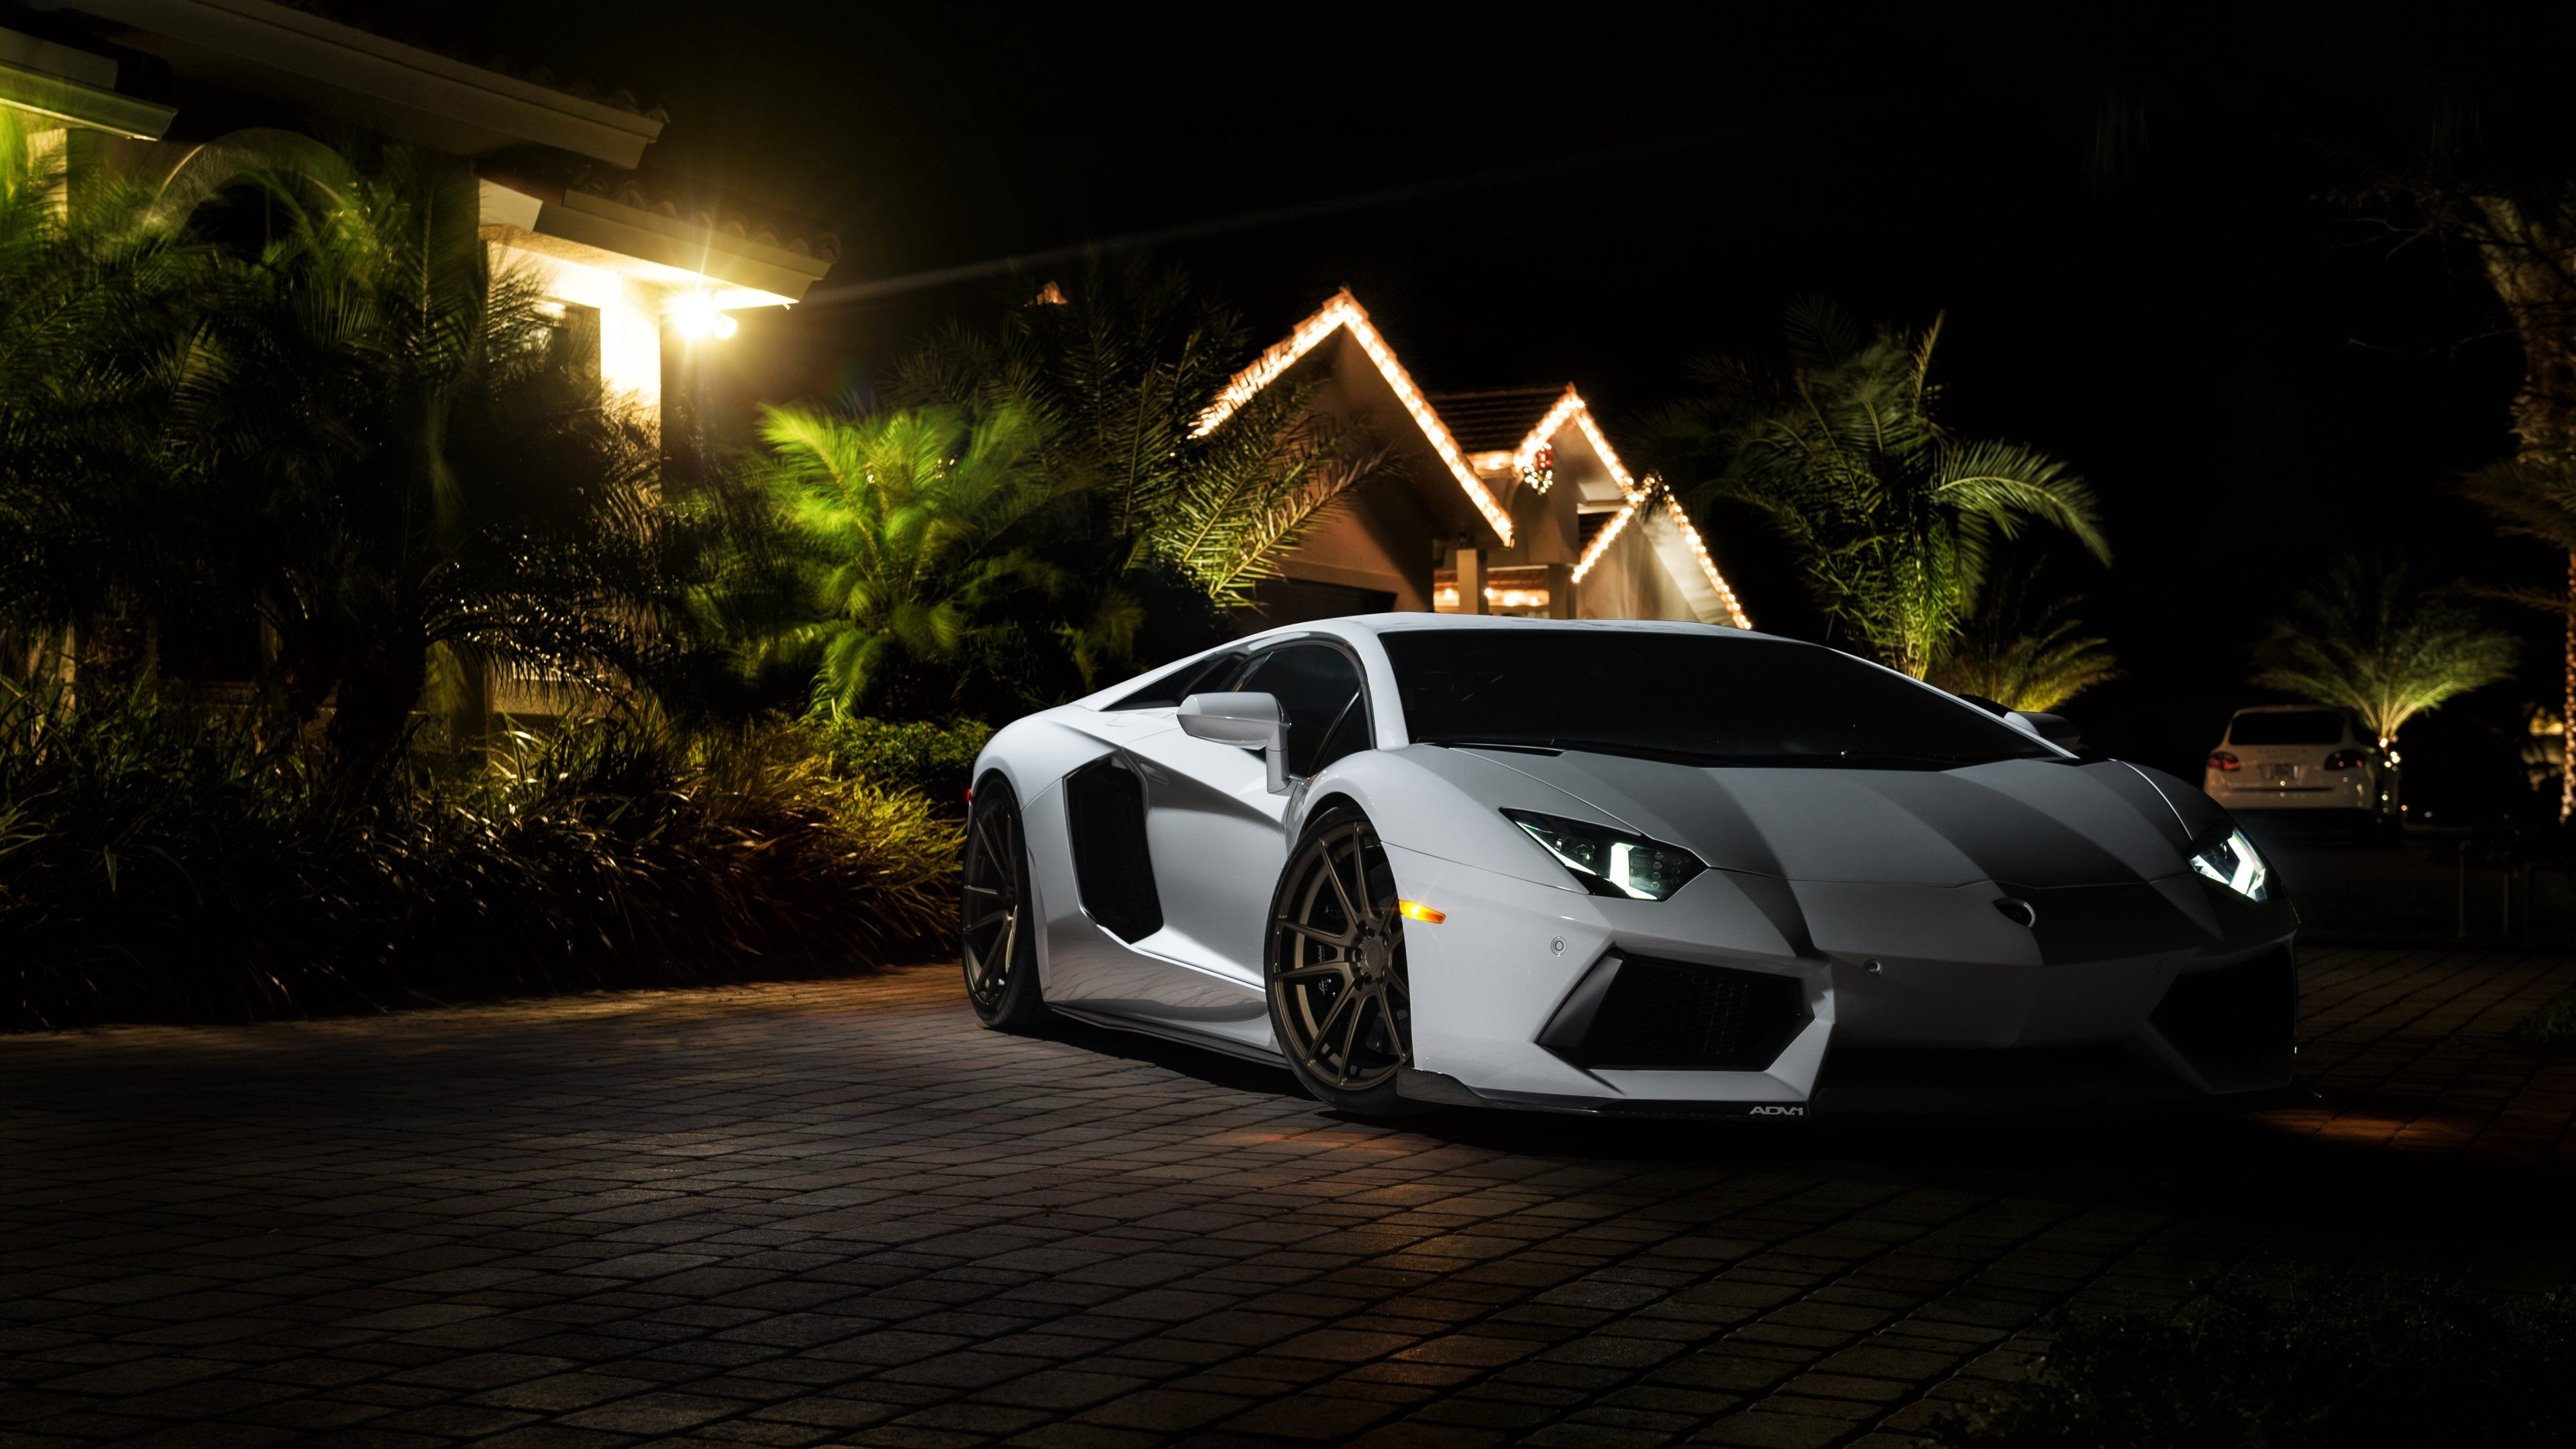 053948 Automobiles Buildings Cars Headlights Lamborghini Aventador Night